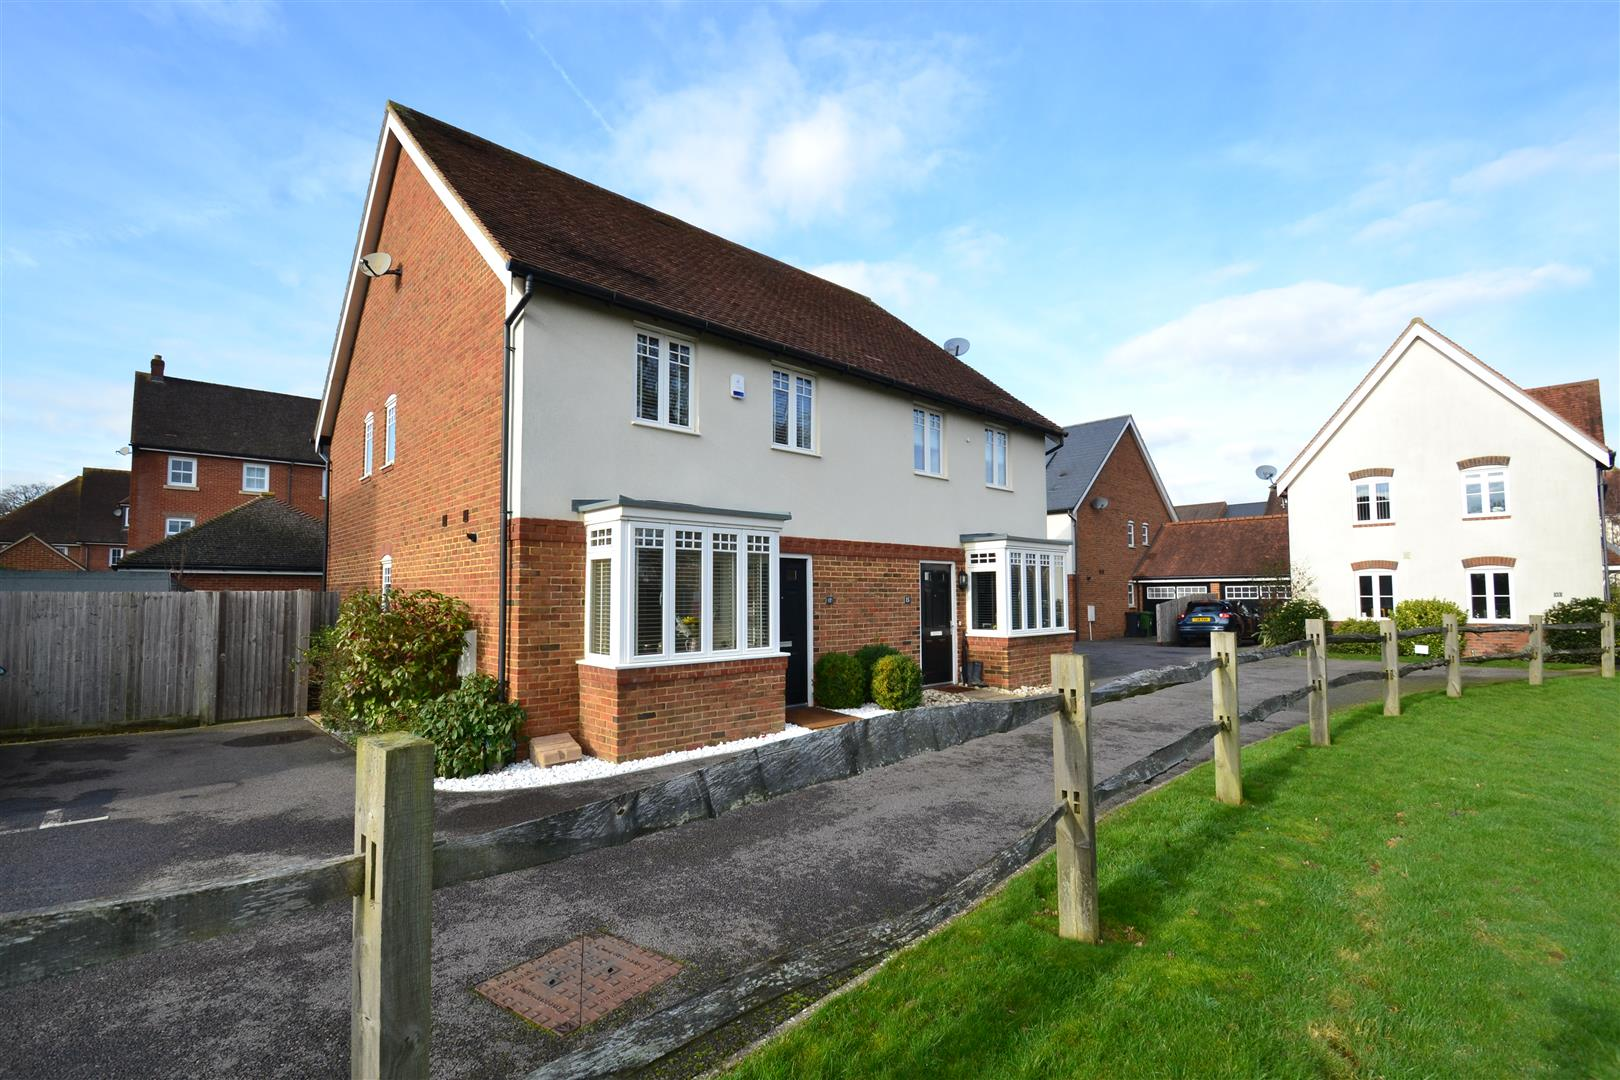 3 Bedrooms Semi Detached House for sale in Newman Road, Horley